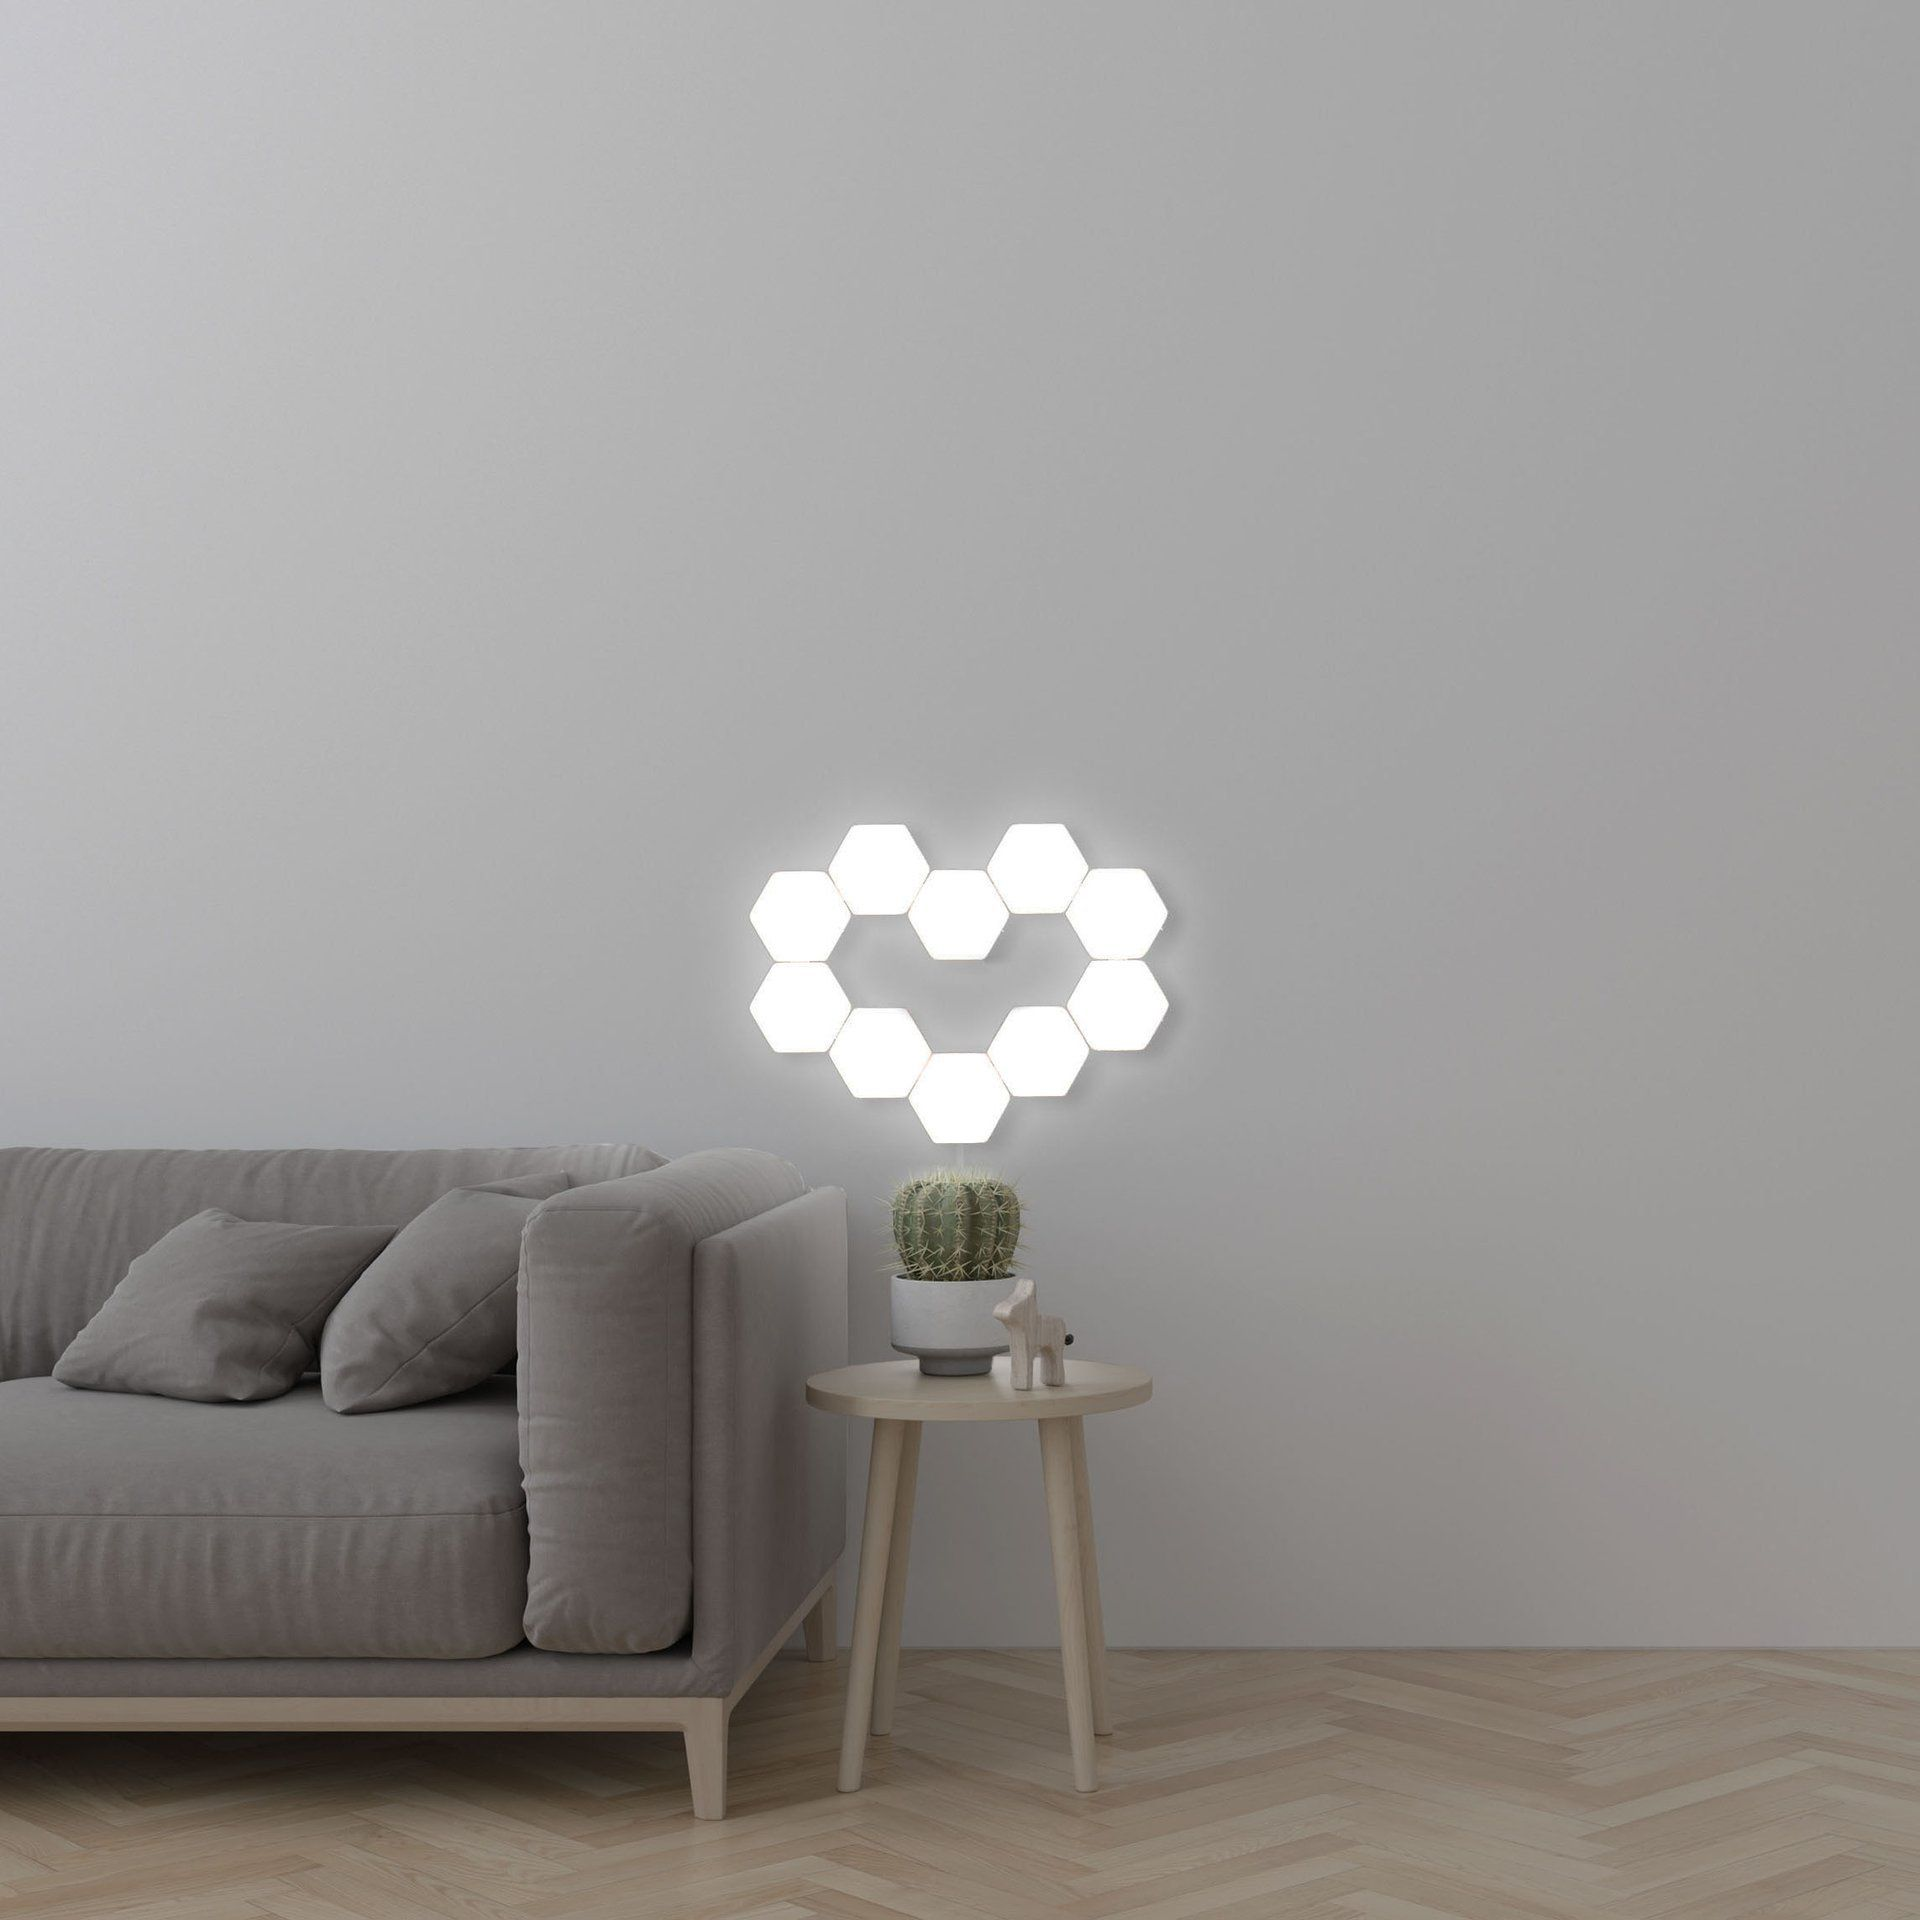 Touch Sensitive Led Lamp Wall Lights Bright Rooms Creative Decor